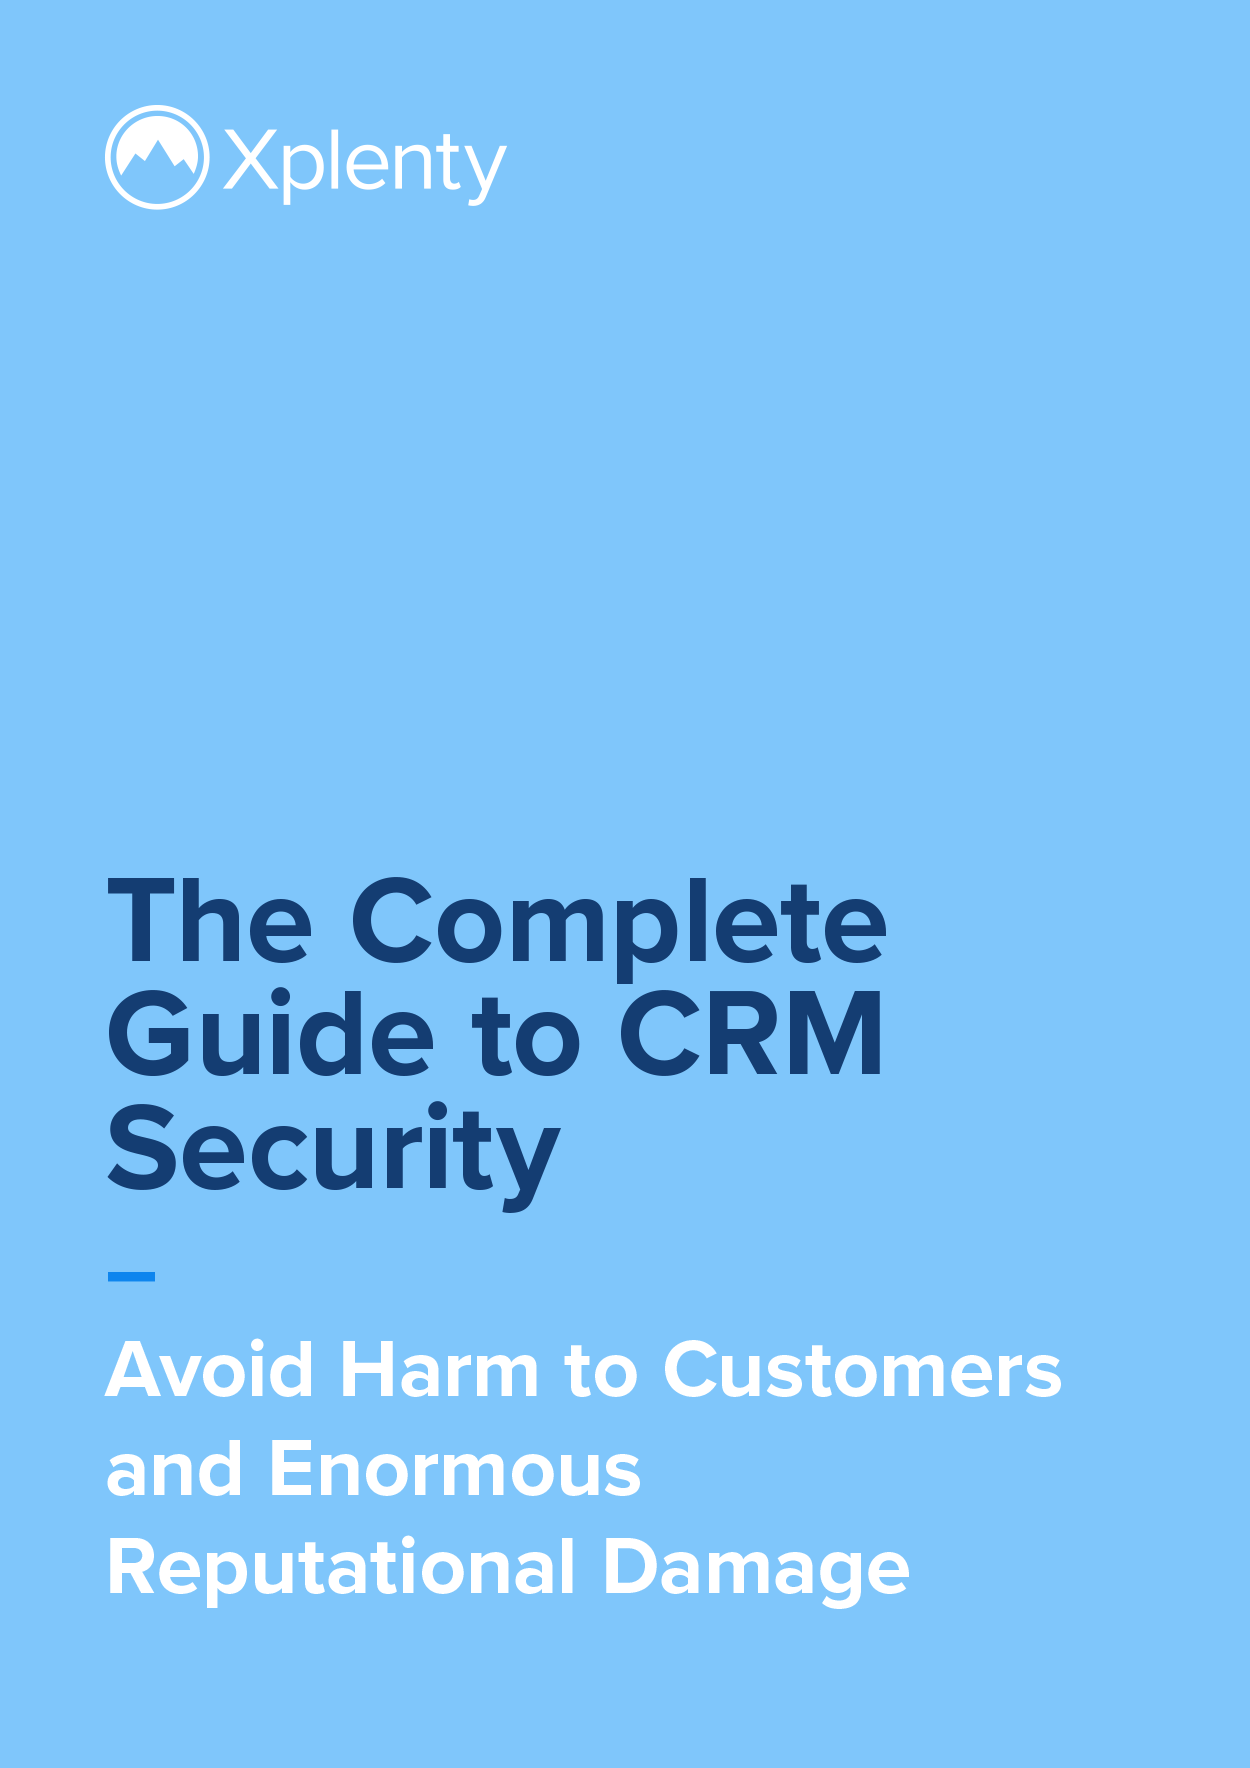 The Complete Guide to CRM Security